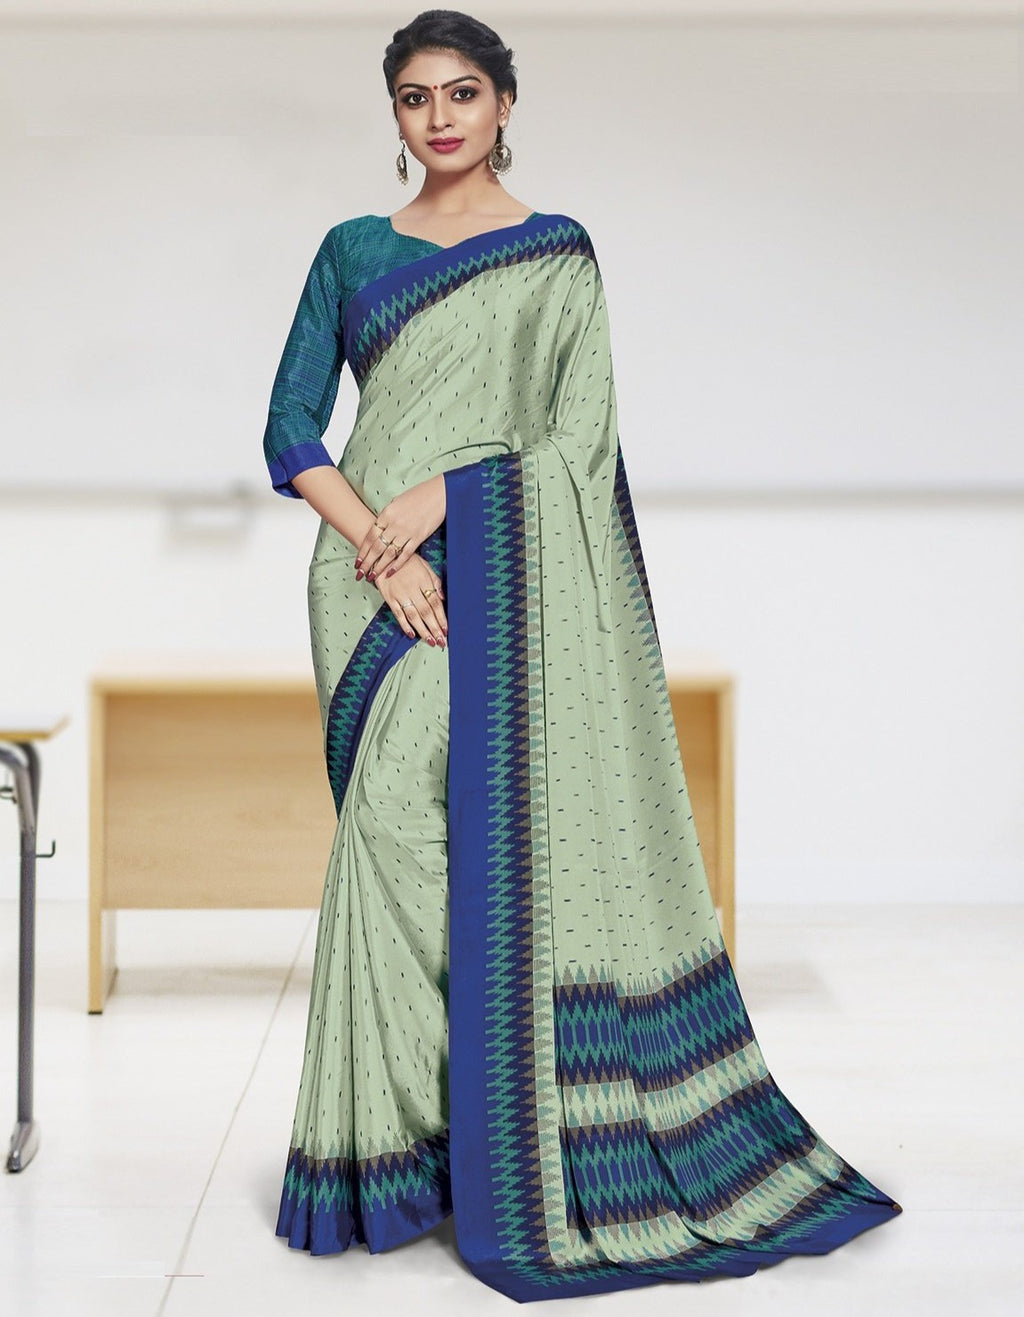 Aqua Green Color Crepe Printed Office Wear Sarees NYF-7911